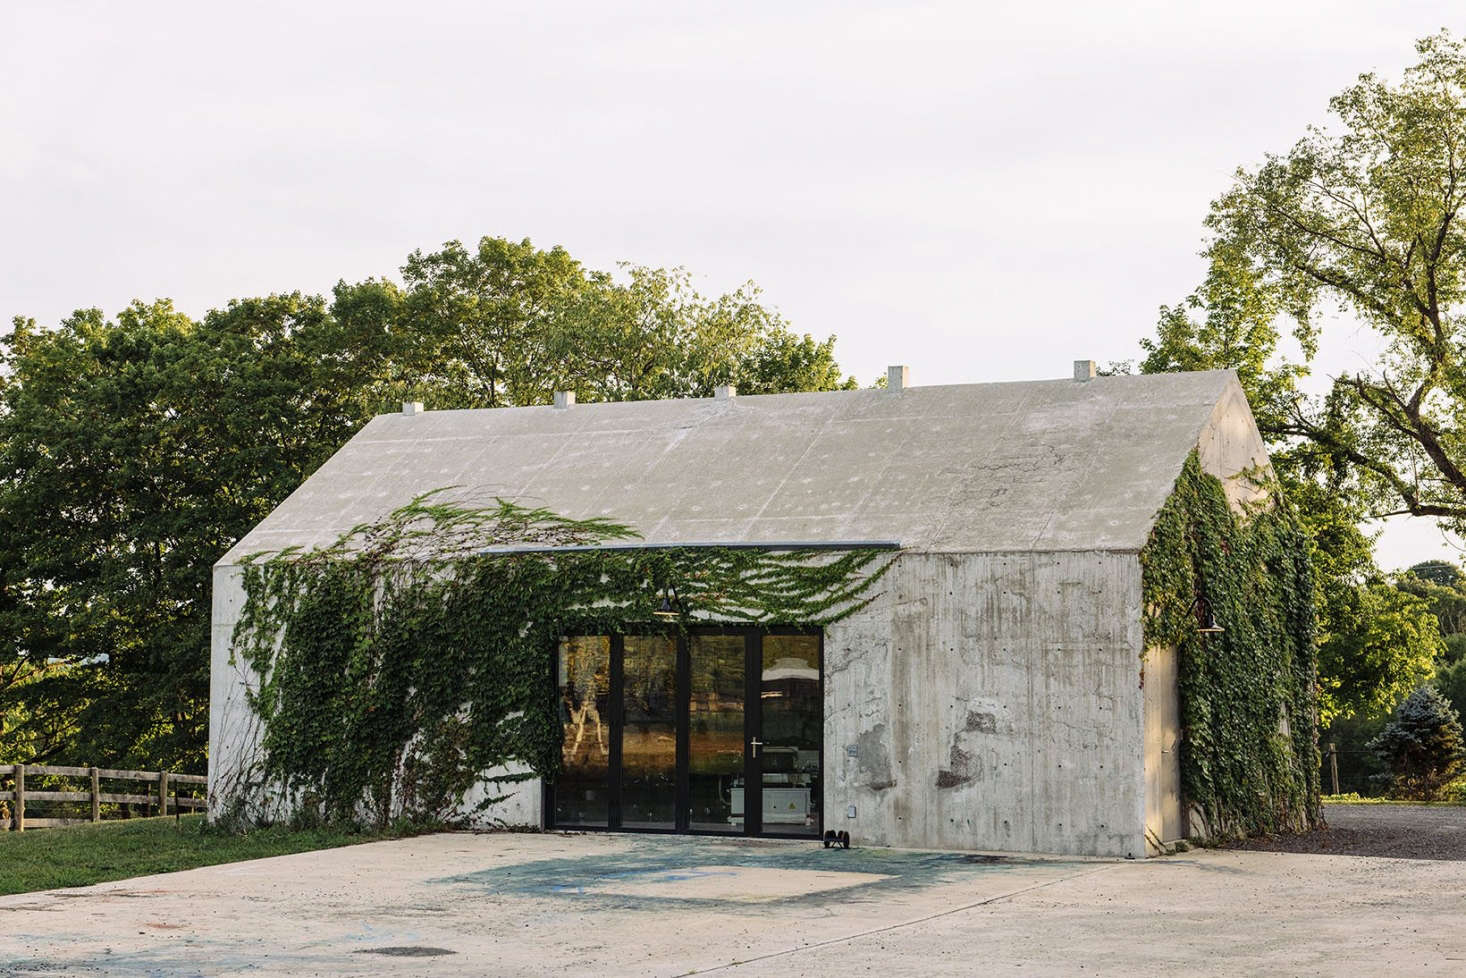 The welding studio is made of reinforced concrete, which first was poured to make three sides of the rectangular base (one side is glass), then poured inside a barn-roof-shaped form in one go.